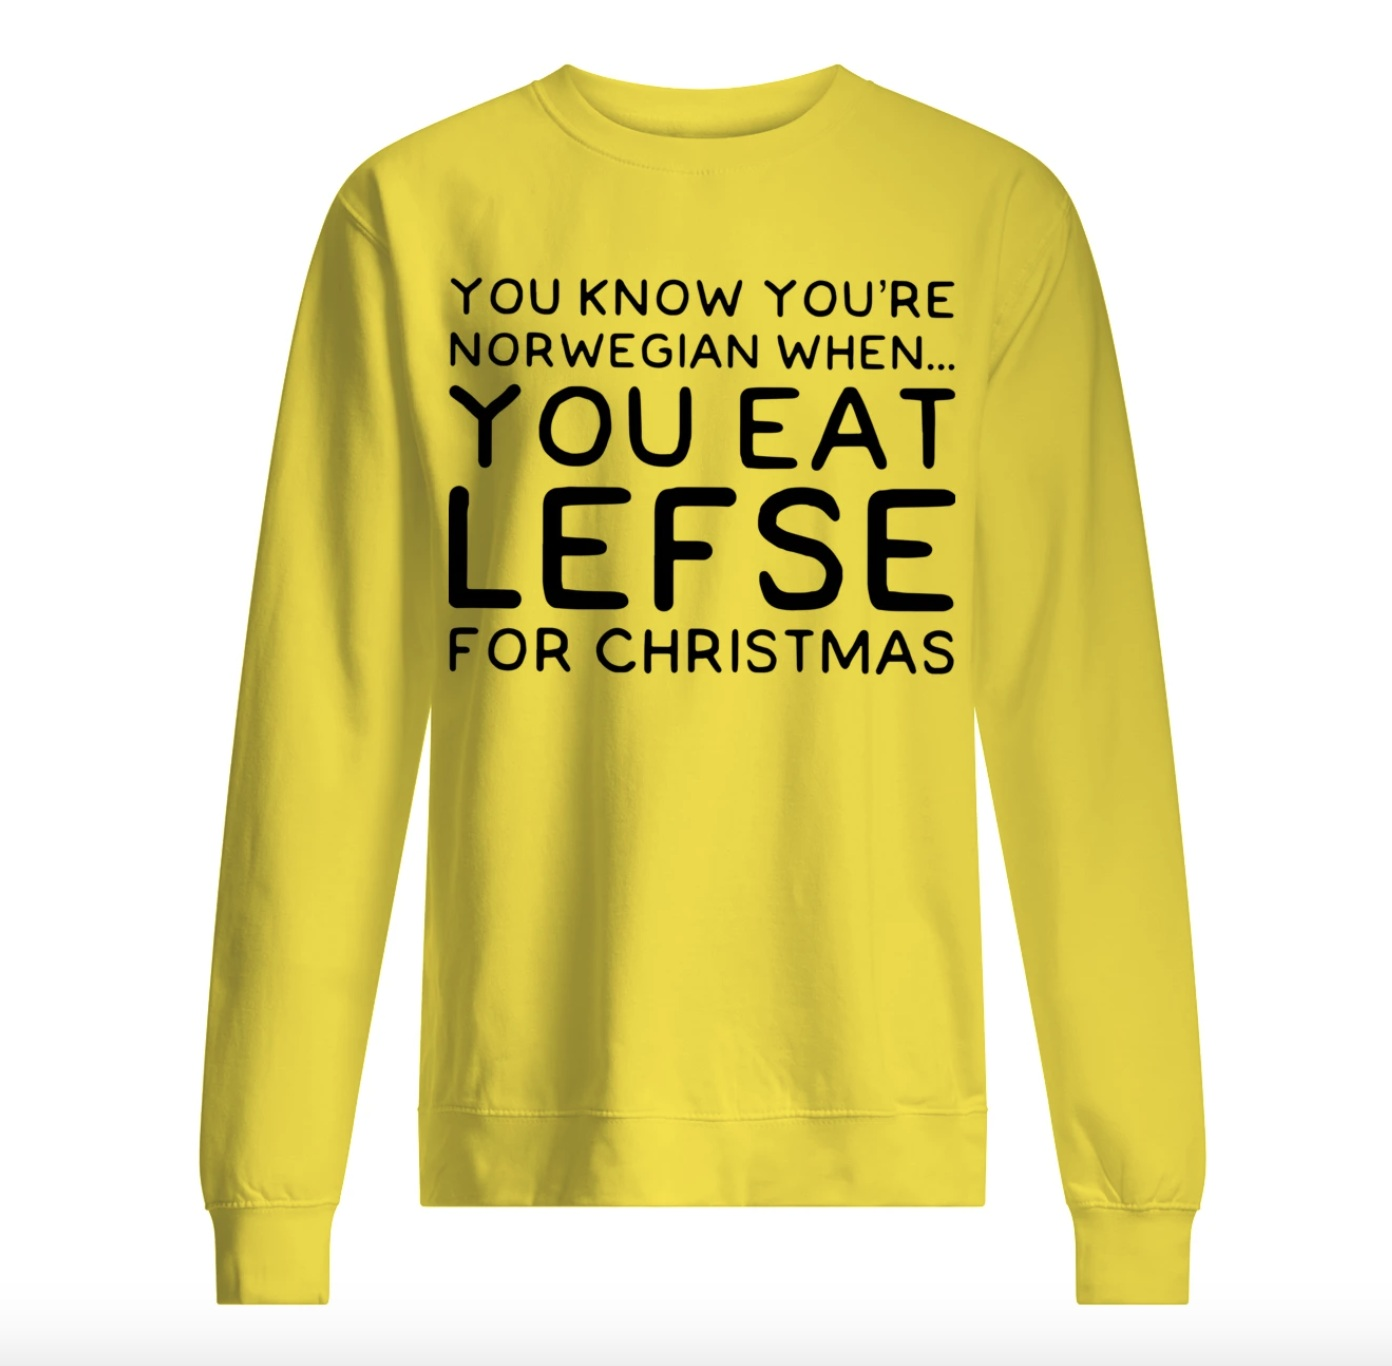 You know you're Norwegian when you eat lefse for Christmas sweatshirt